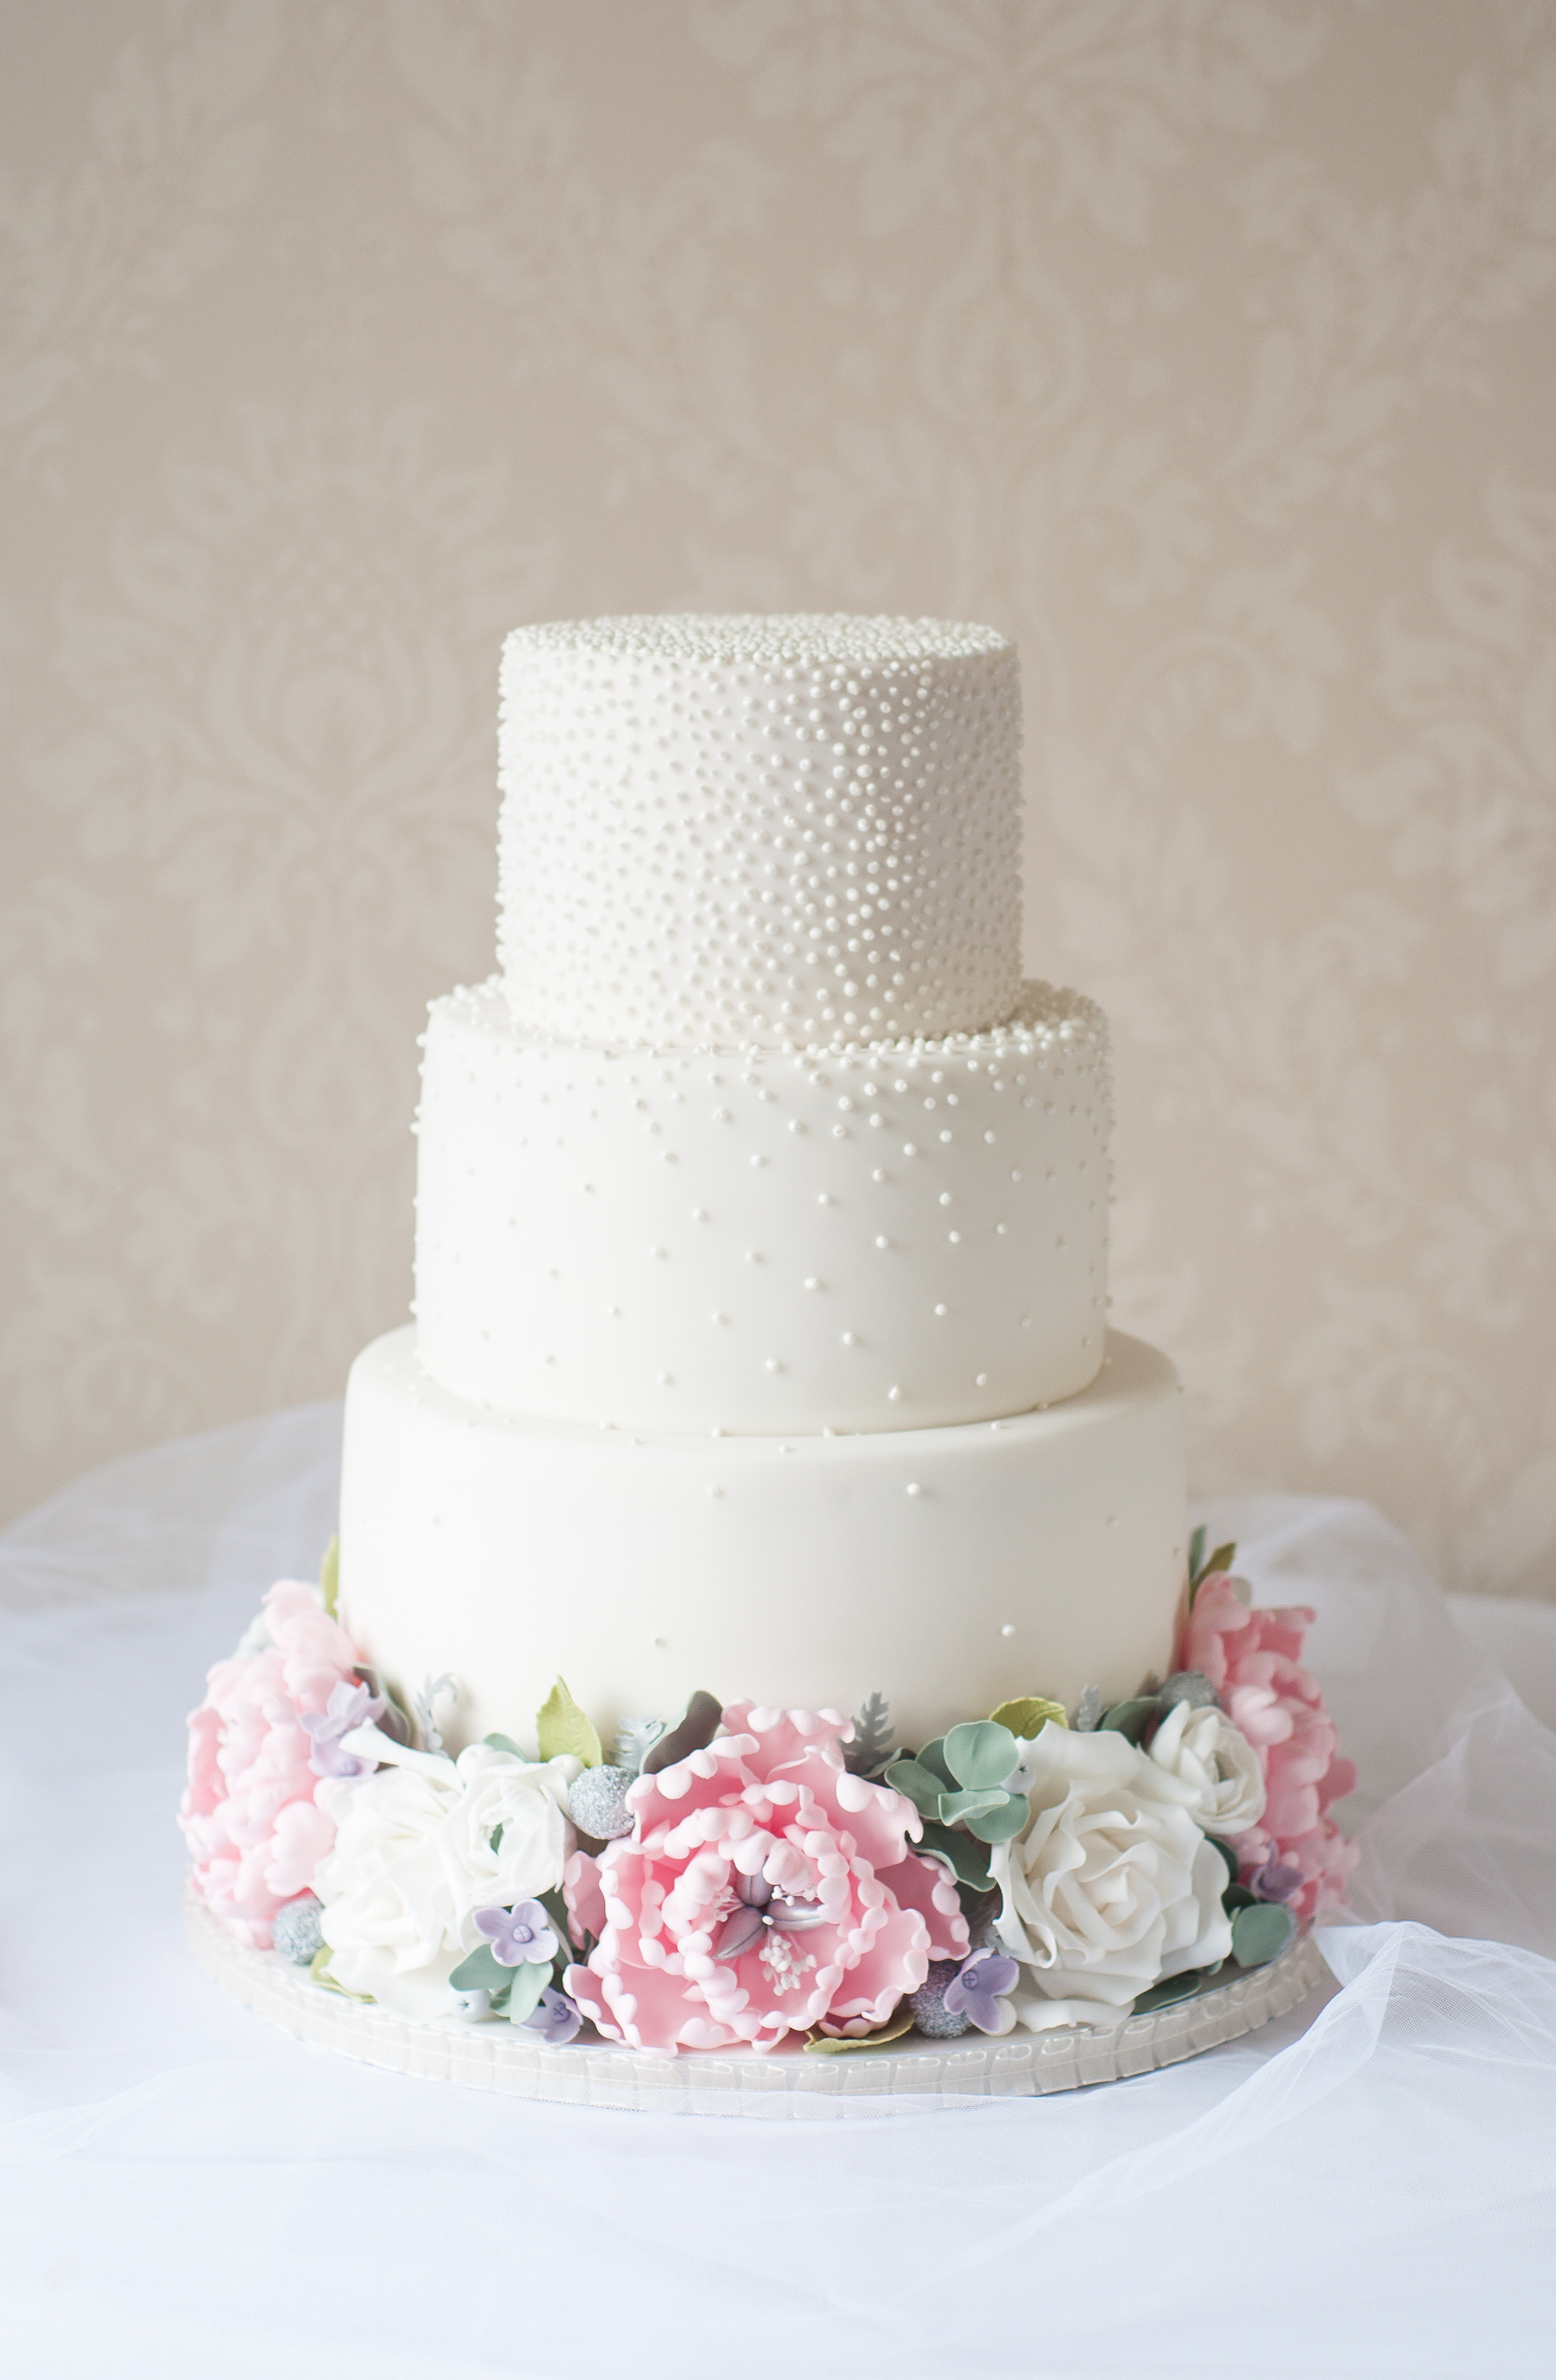 Blush peony floral crown wedding cake with piped pearls